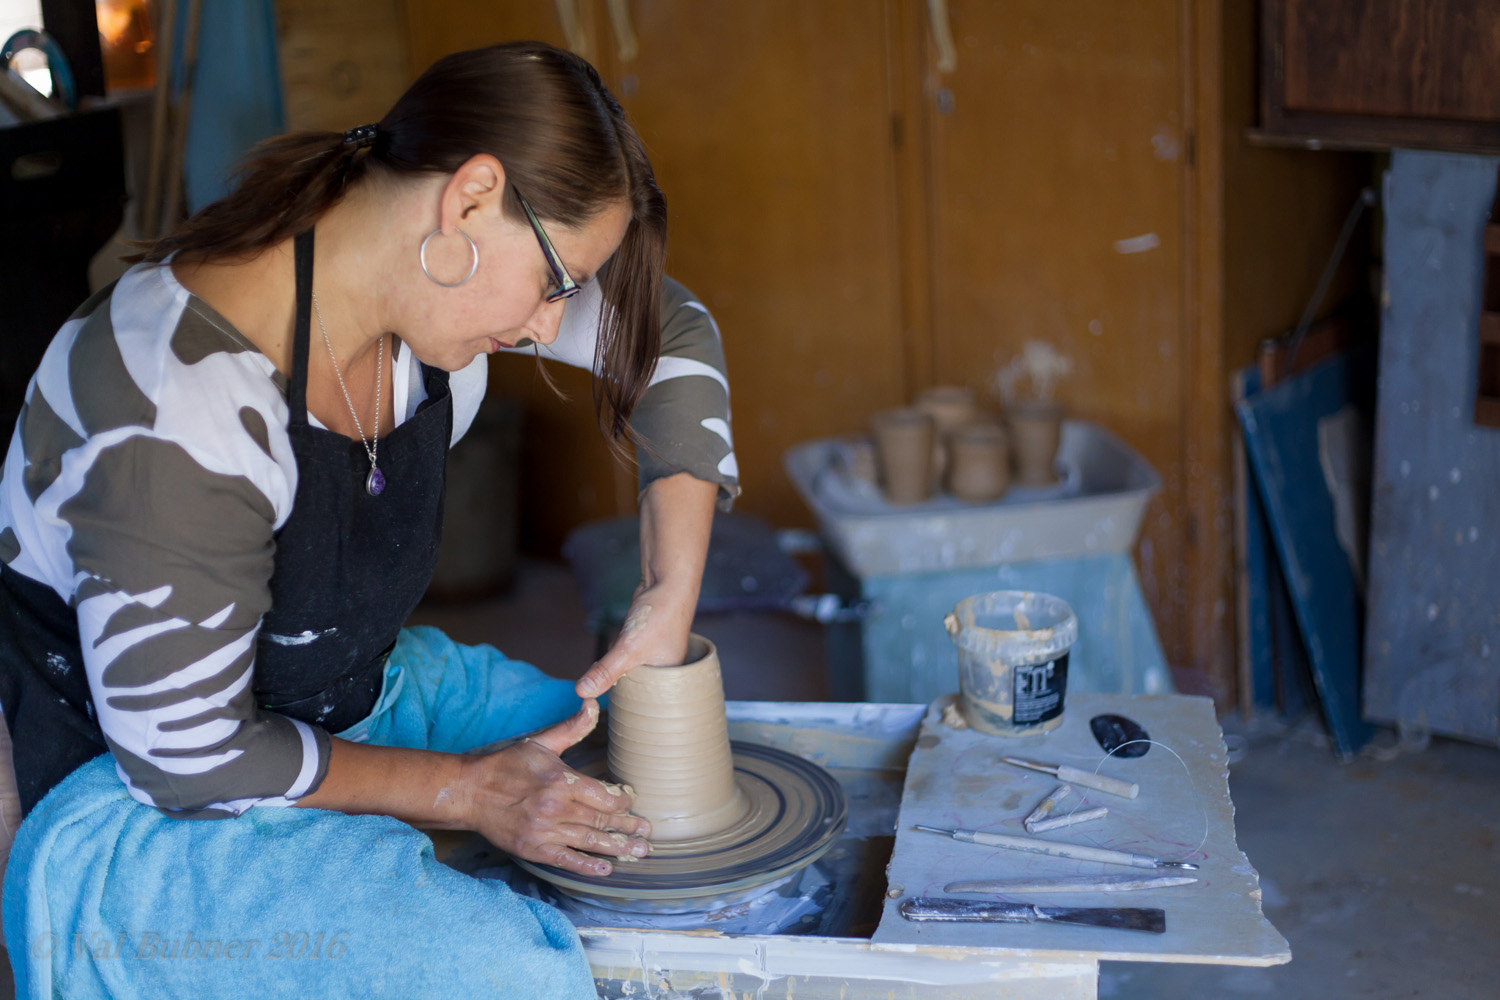 Tania Kunze a ceramic artist from Adelaide shaping a pot on the wheel in her studio